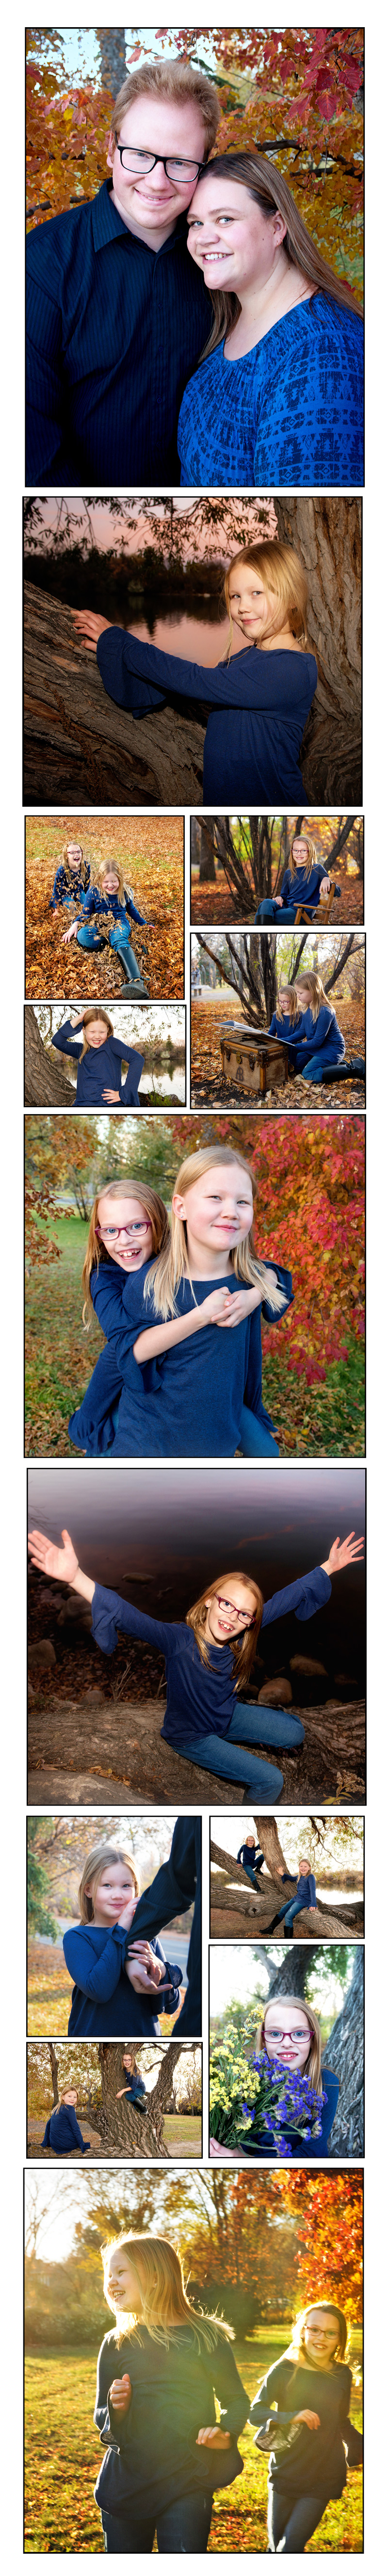 beautiful-family-fall-photos-regina-free-lense-photo-01.jpg